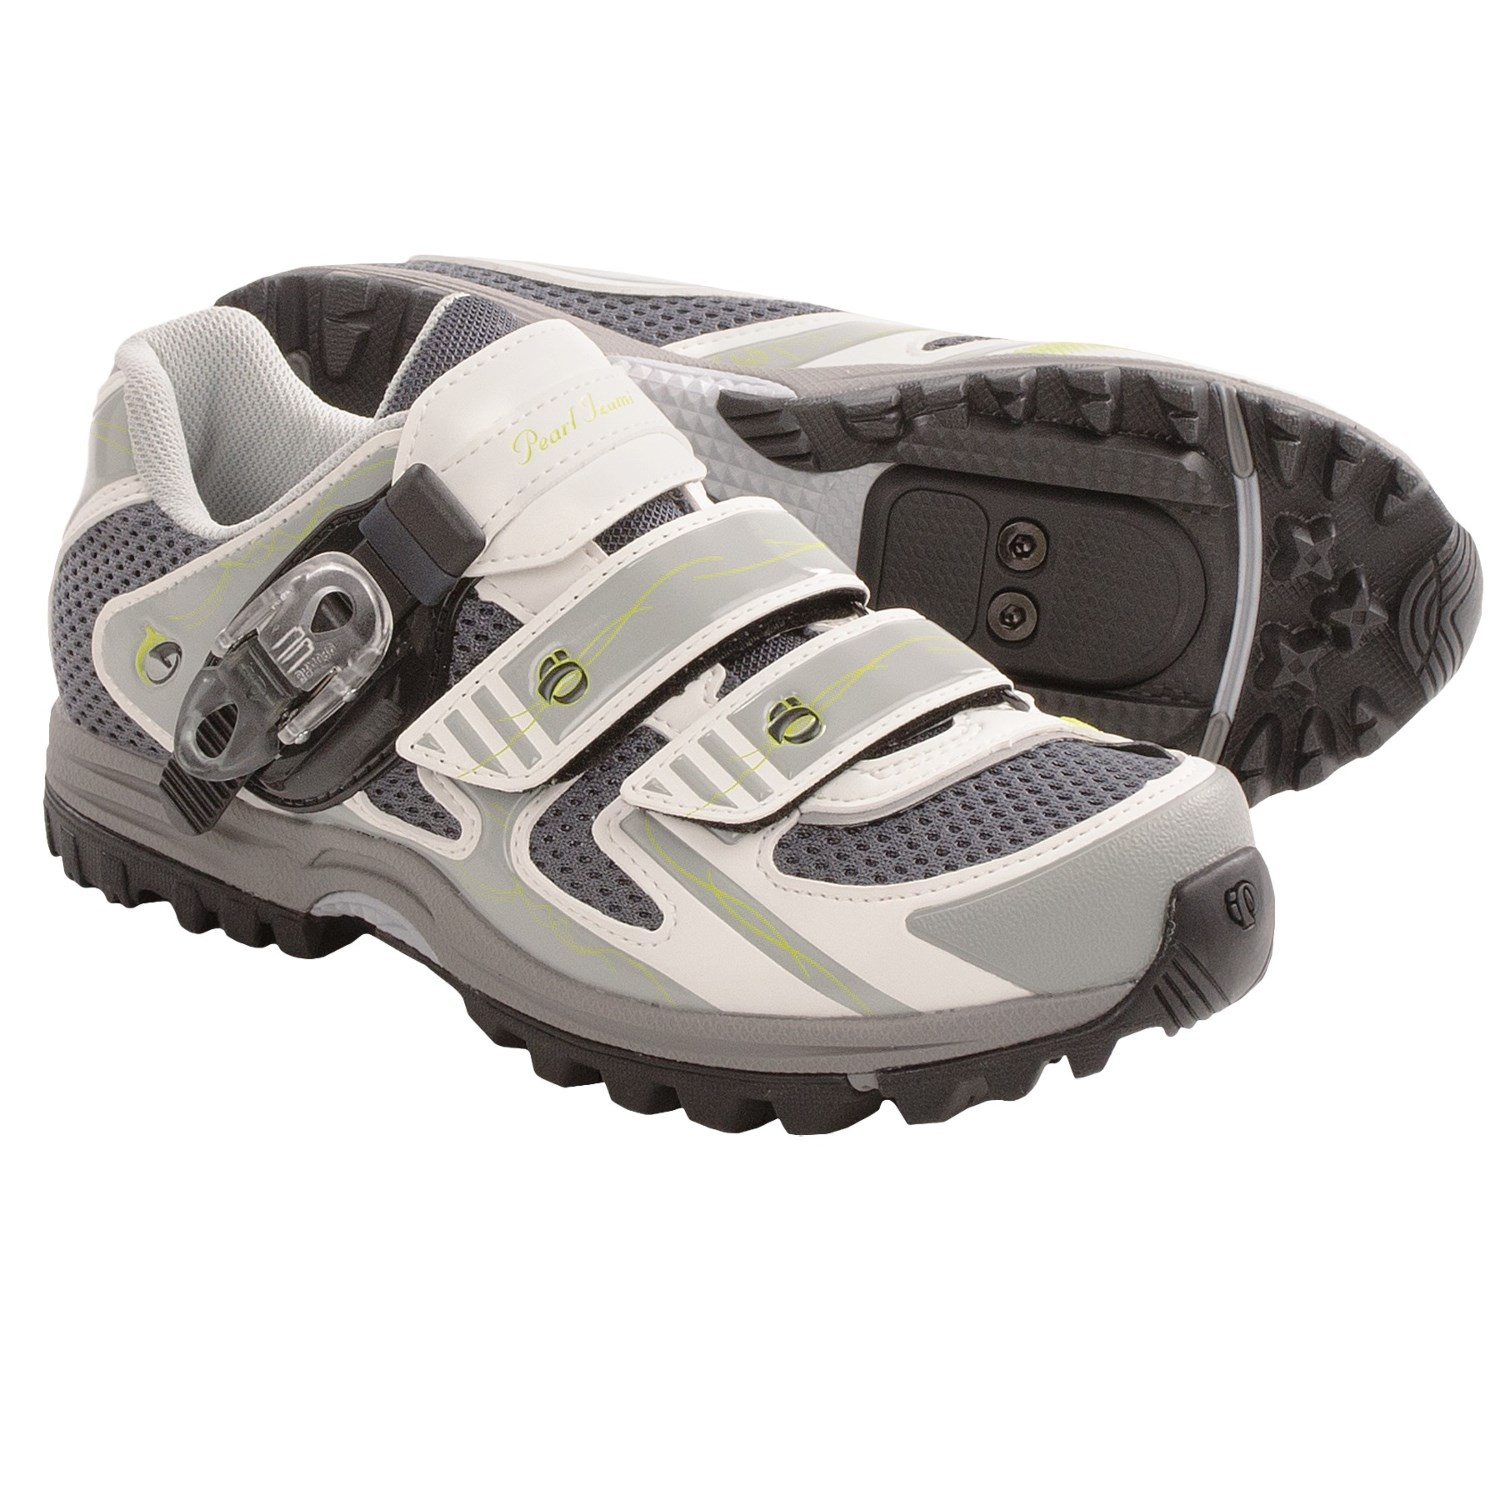 Pearl Izumi X-Alp Drift II Mountain Bike Shoes - SPD (For Women